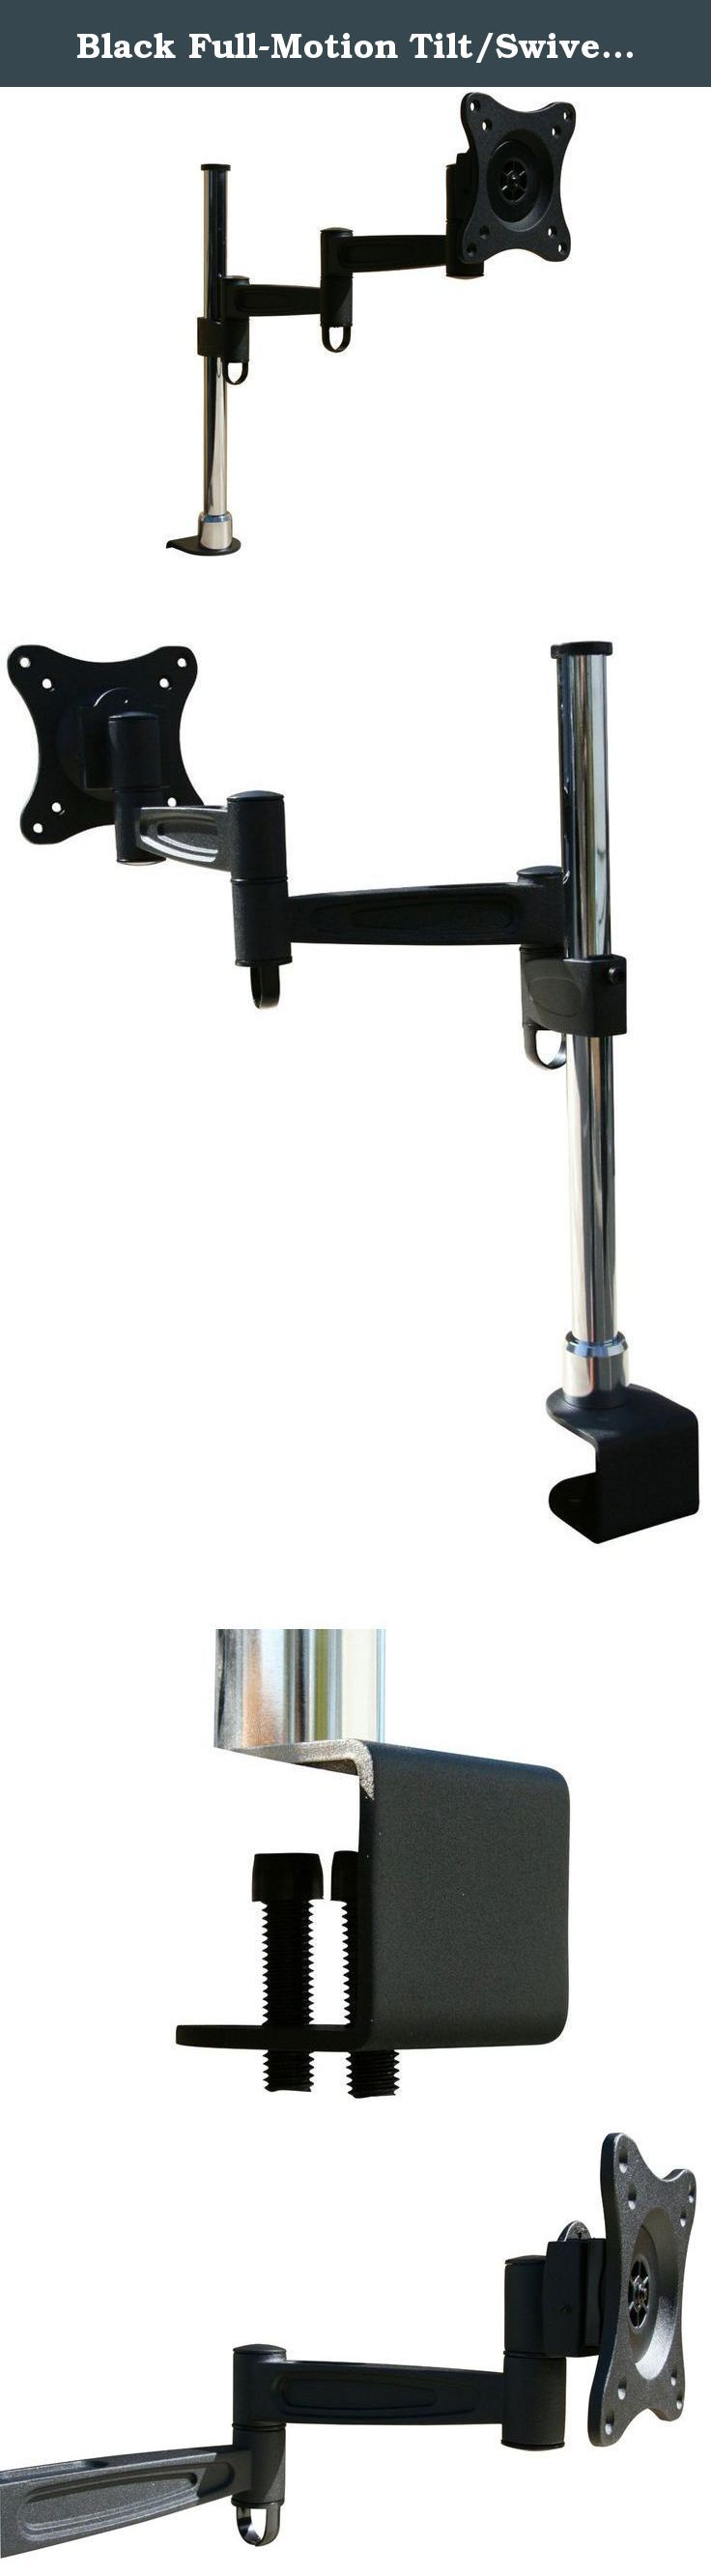 """Black Full-Motion Tilt/Swivel Desk/Monitor Mount Bracket for Samsung UN24H4500 24"""" inch LED HDTV TV/Television - Articulating/Tilting/Swiveling. Compatible with the Samsung UN24H4500 24"""" inch LED HDTV TV/Television, this adjustable full-motion tilt/swivel black desk/monitor mount bracket features a hinged arm for added range of motion. It's height adjustable feature provides many options for viewing preferences. This Full-Motion Desk Mount supports most* 10"""" to 27"""" LED/LCD/Plasma..."""